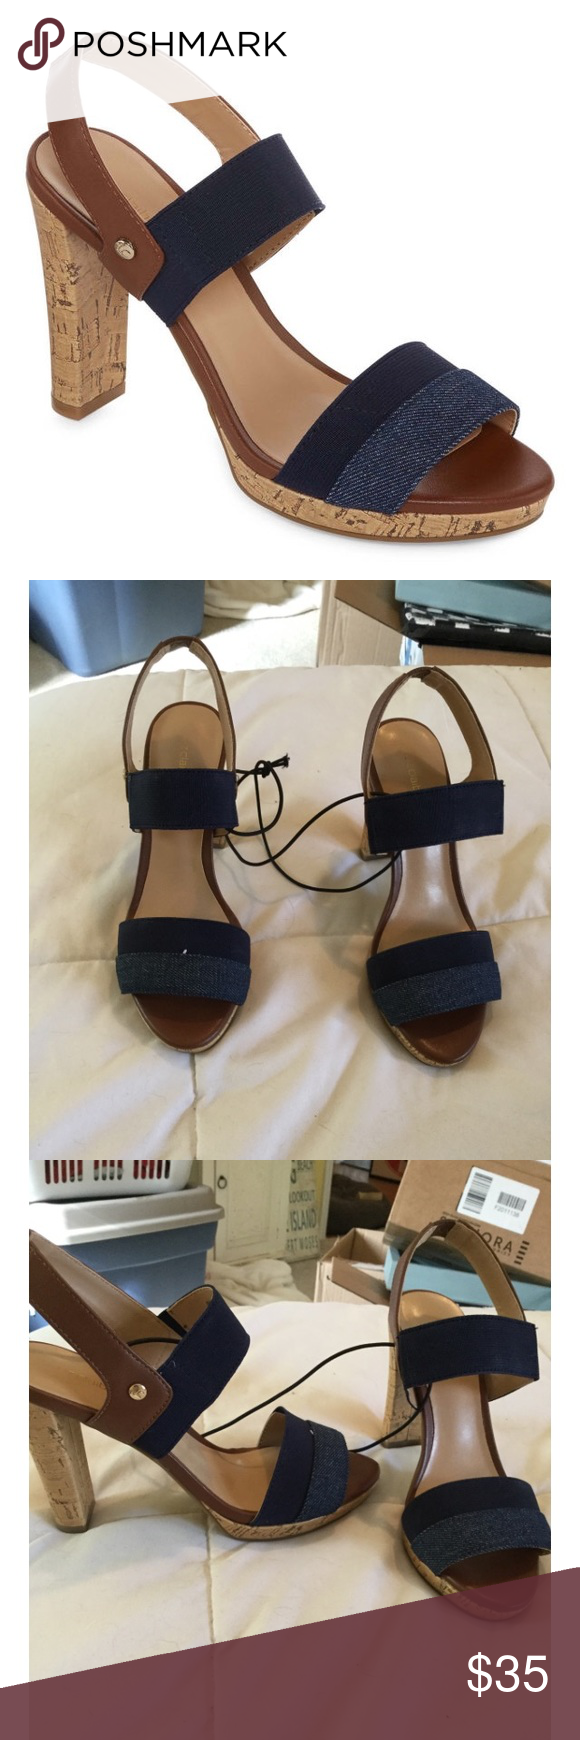 🌺🌸💐 CUTE DENIM HEELS💐🌸🌺 I have two pairs of the fabulous heels! Unfortunately they don't fit me! They have a semi thick cork heel with denim straps! I have two pairs! One unopened and one just tried on! You can request which one you want!!  I will post more photos upon request. Bundle 2+ and save 10%! Reasonable offers accepted!! 🌺🌻💐🌸 Liz Claiborne Shoes Heels